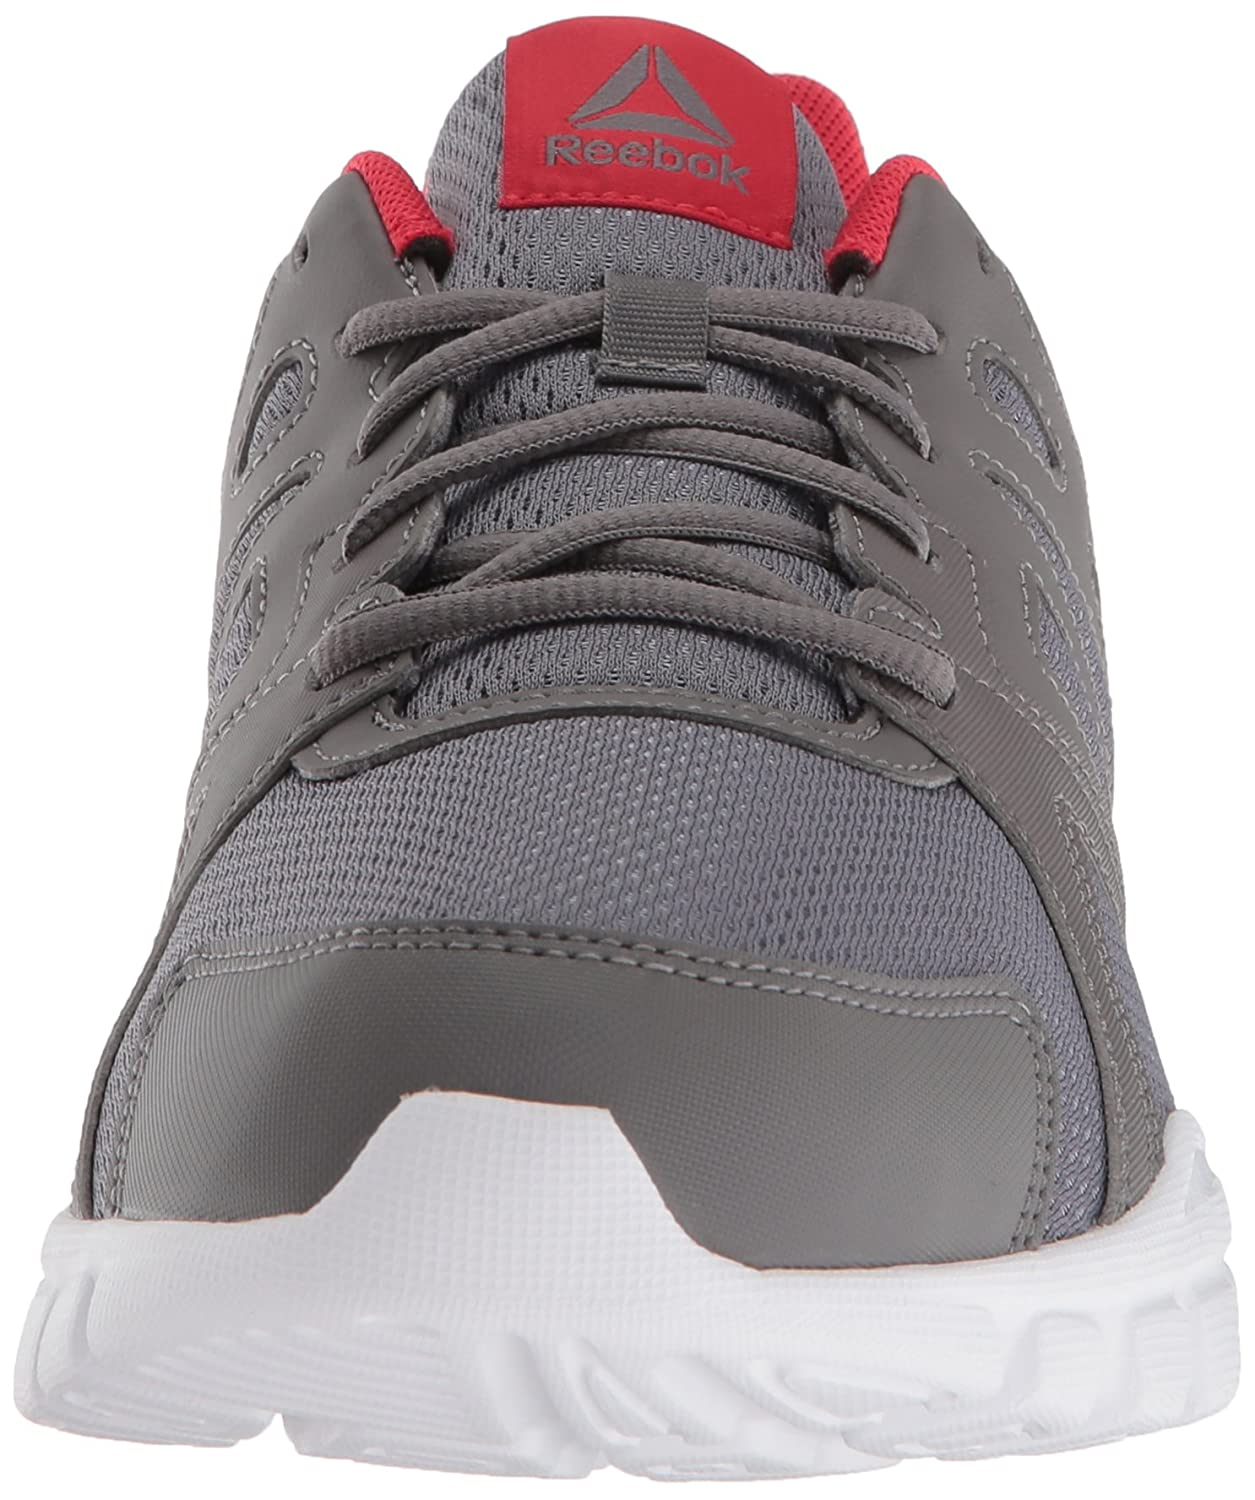 cheaper da8bf dfa9d Reebok Men s Trainfusion Nine 3.0 Cross Trainer  Buy Online at Low Prices  in India - Amazon.in